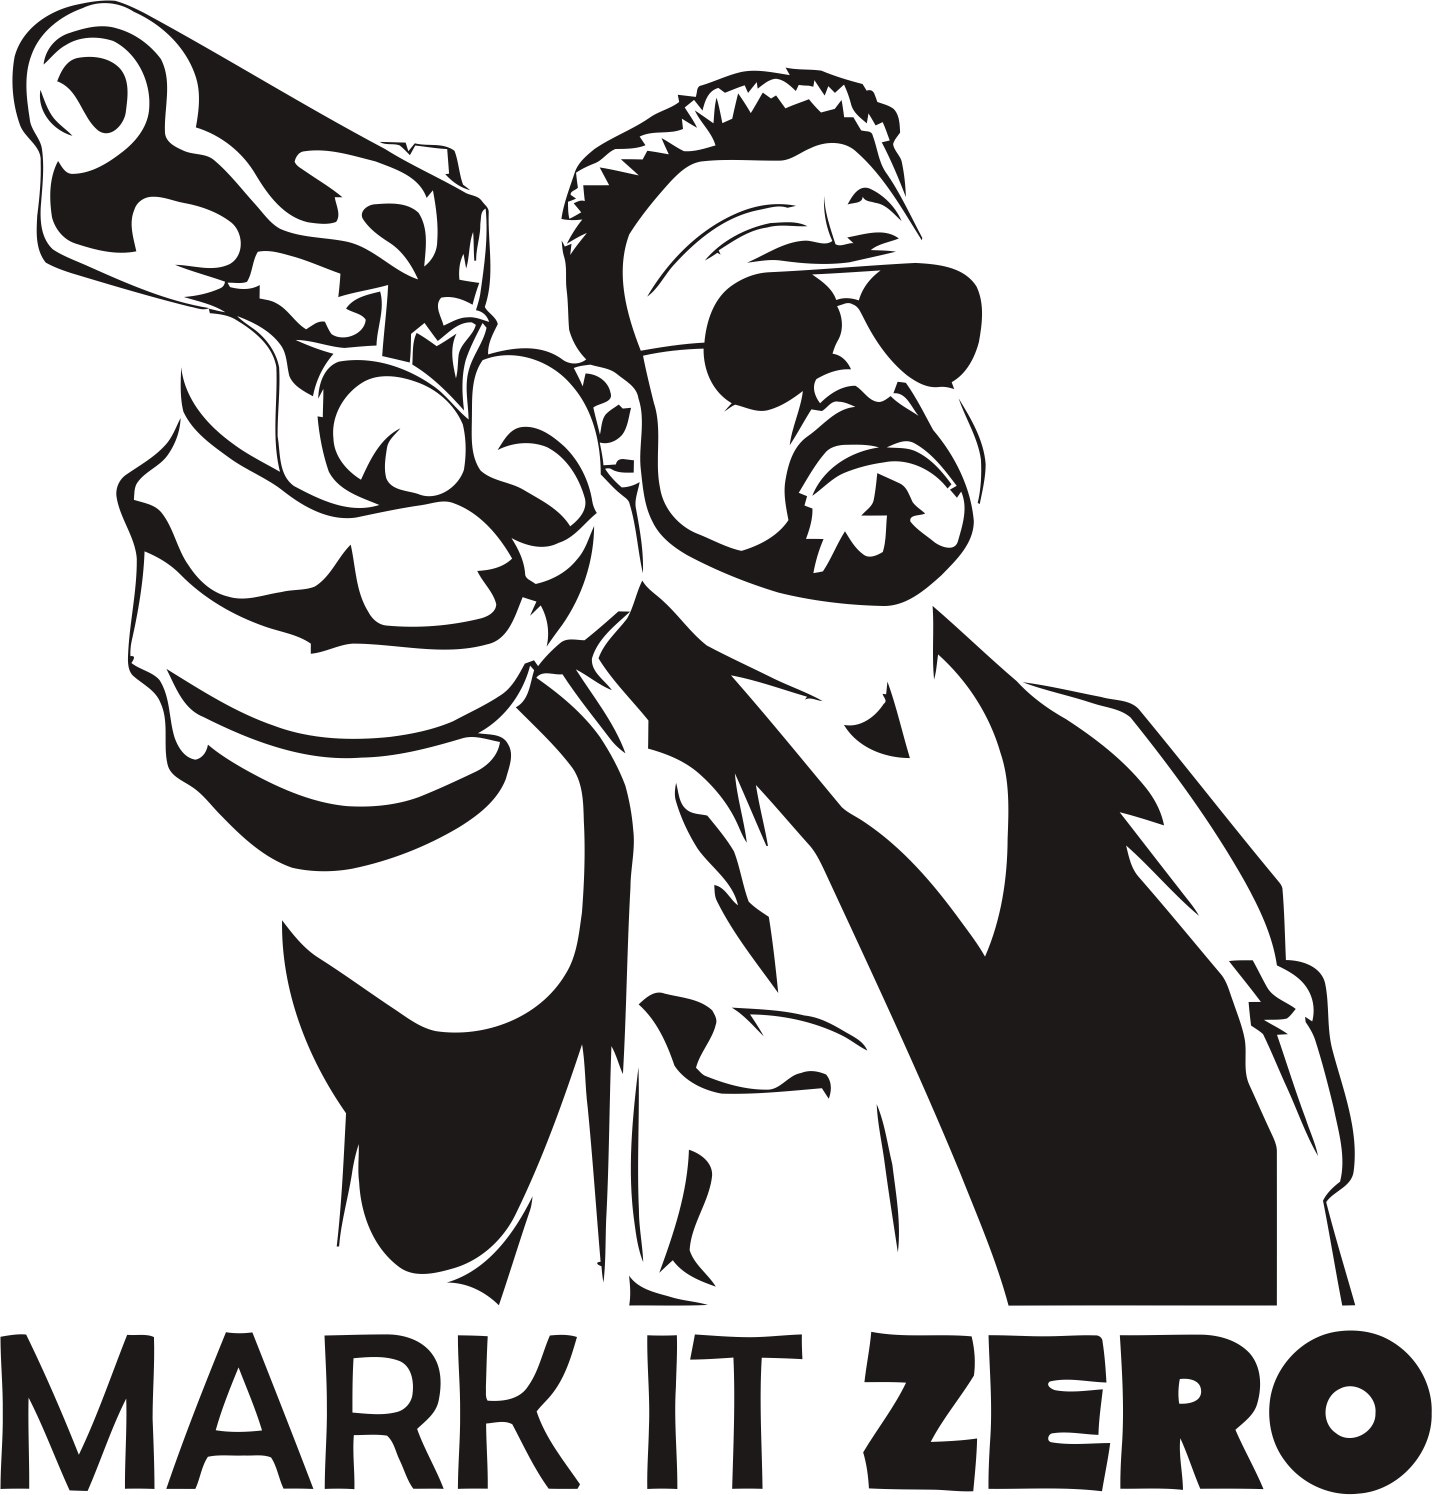 Big Lebowski Free Vector Cdr Download 3axis Co